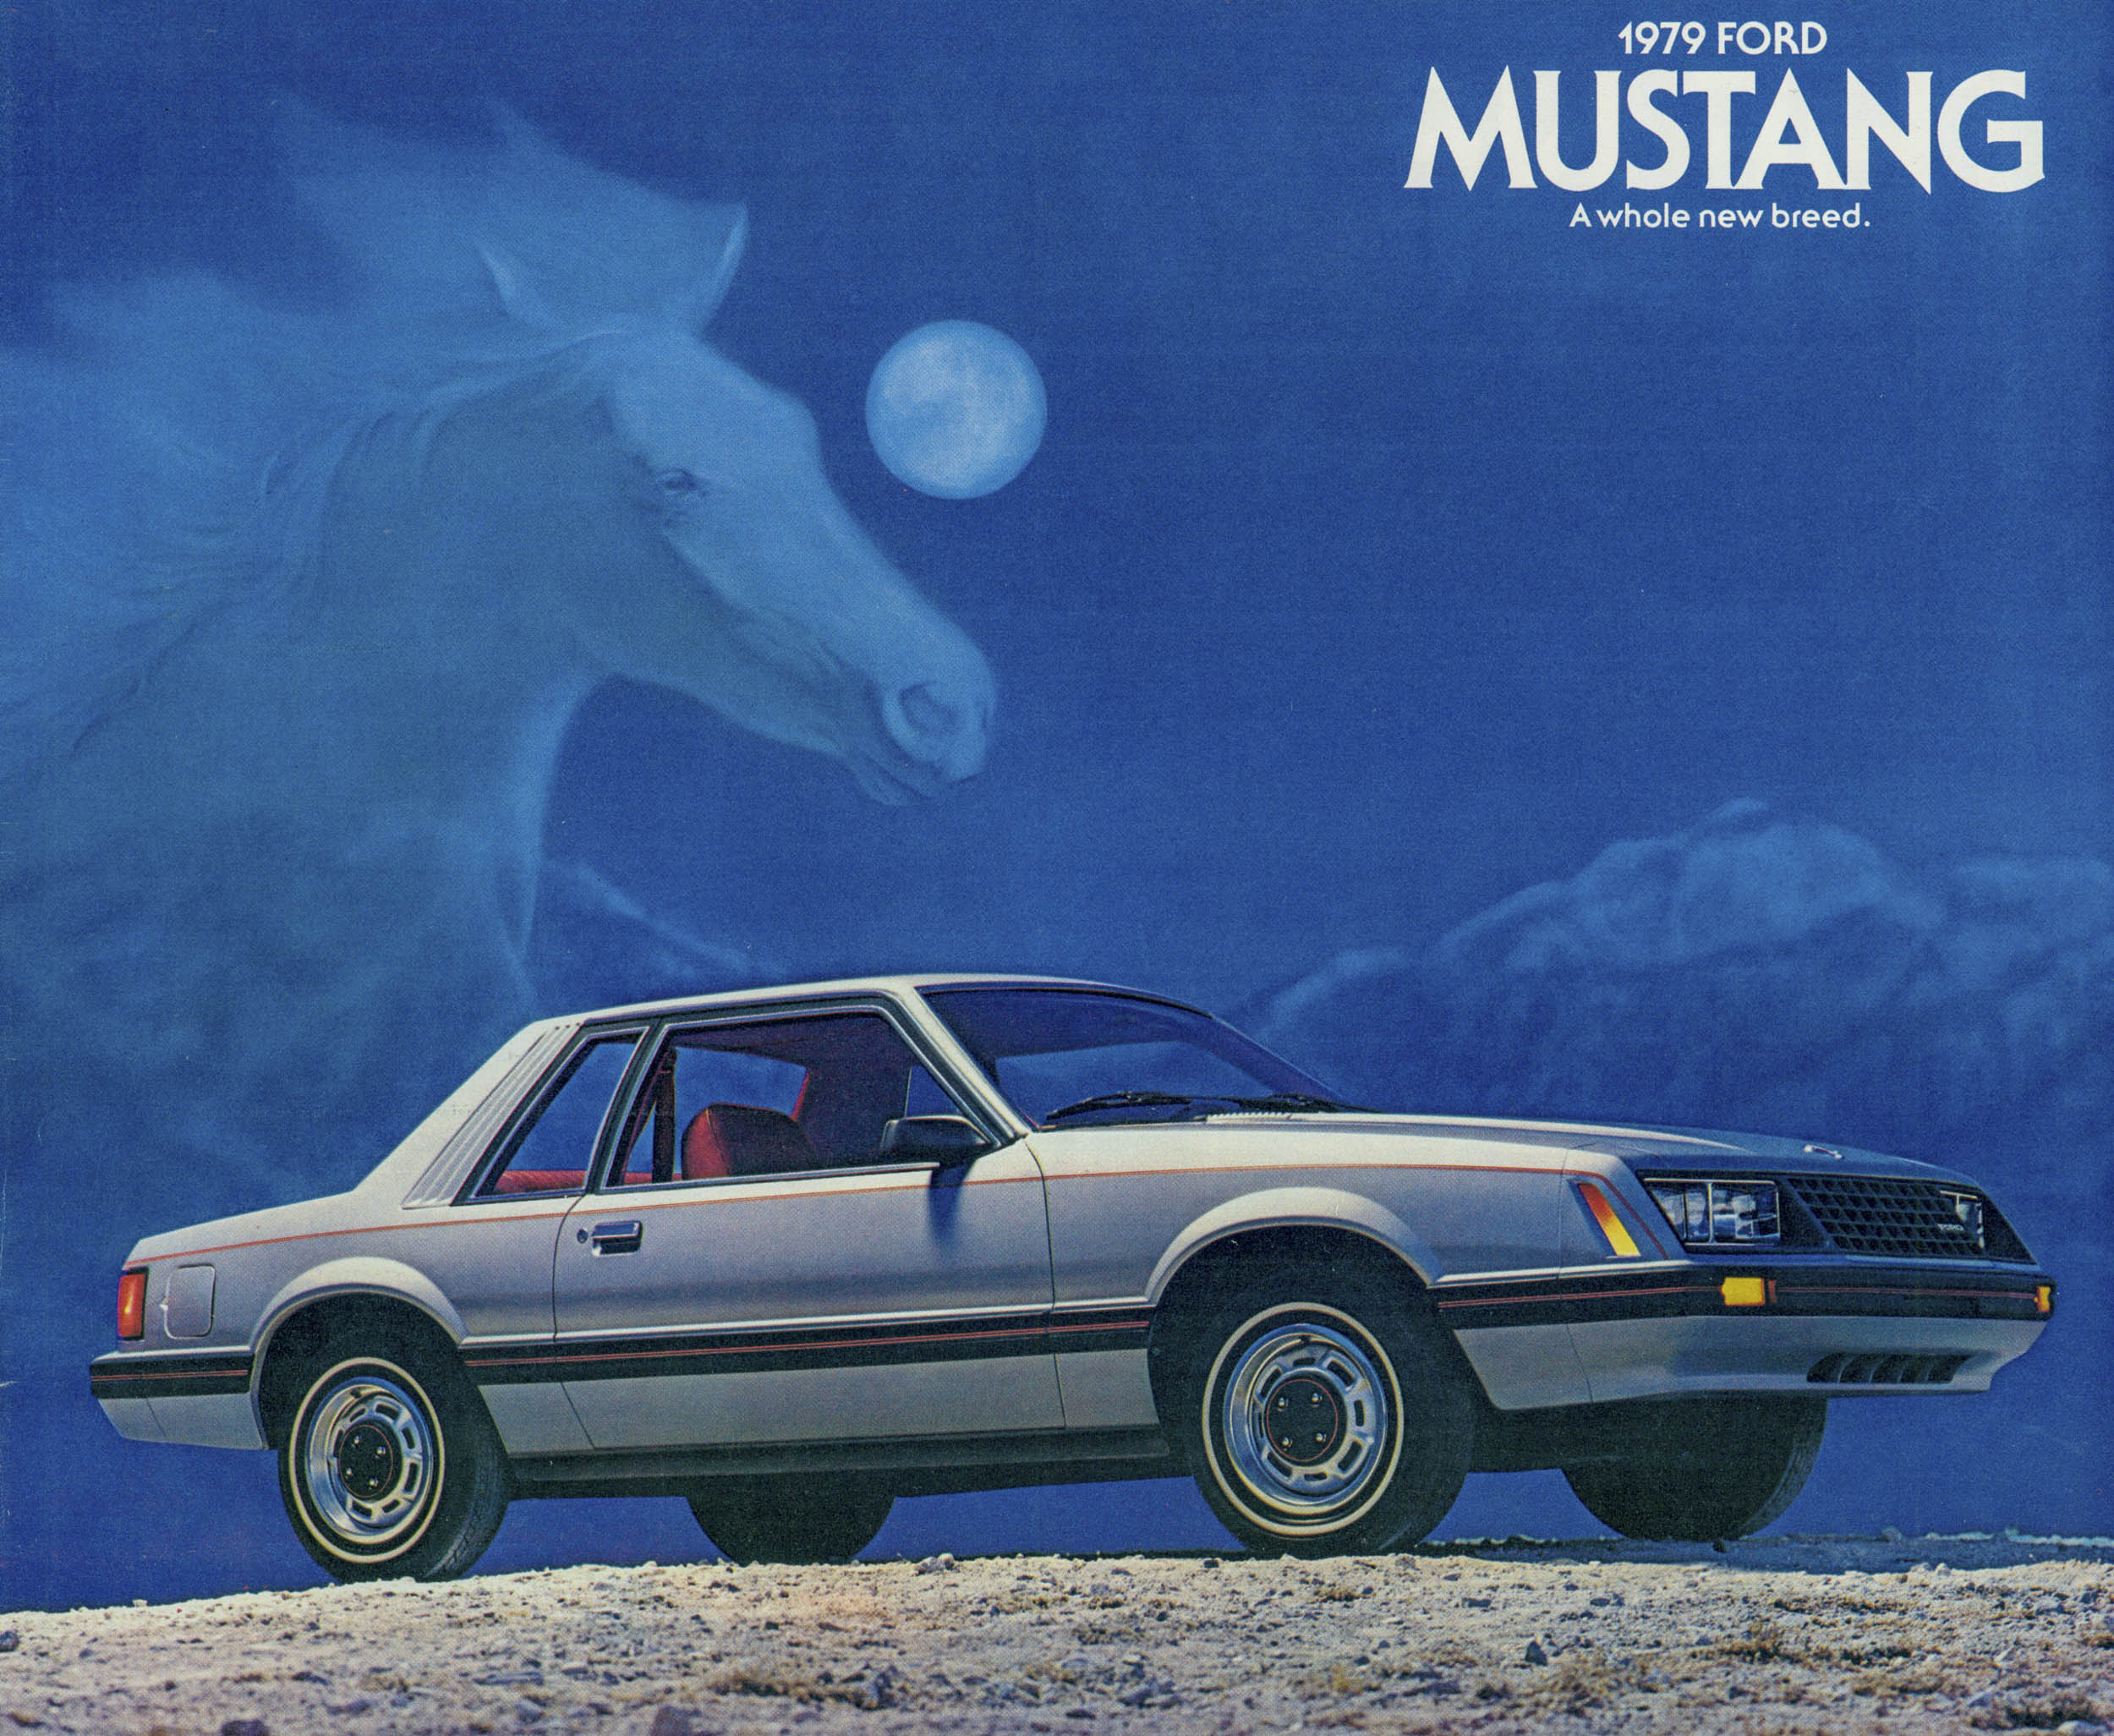 Ford Mustang brochure cover art